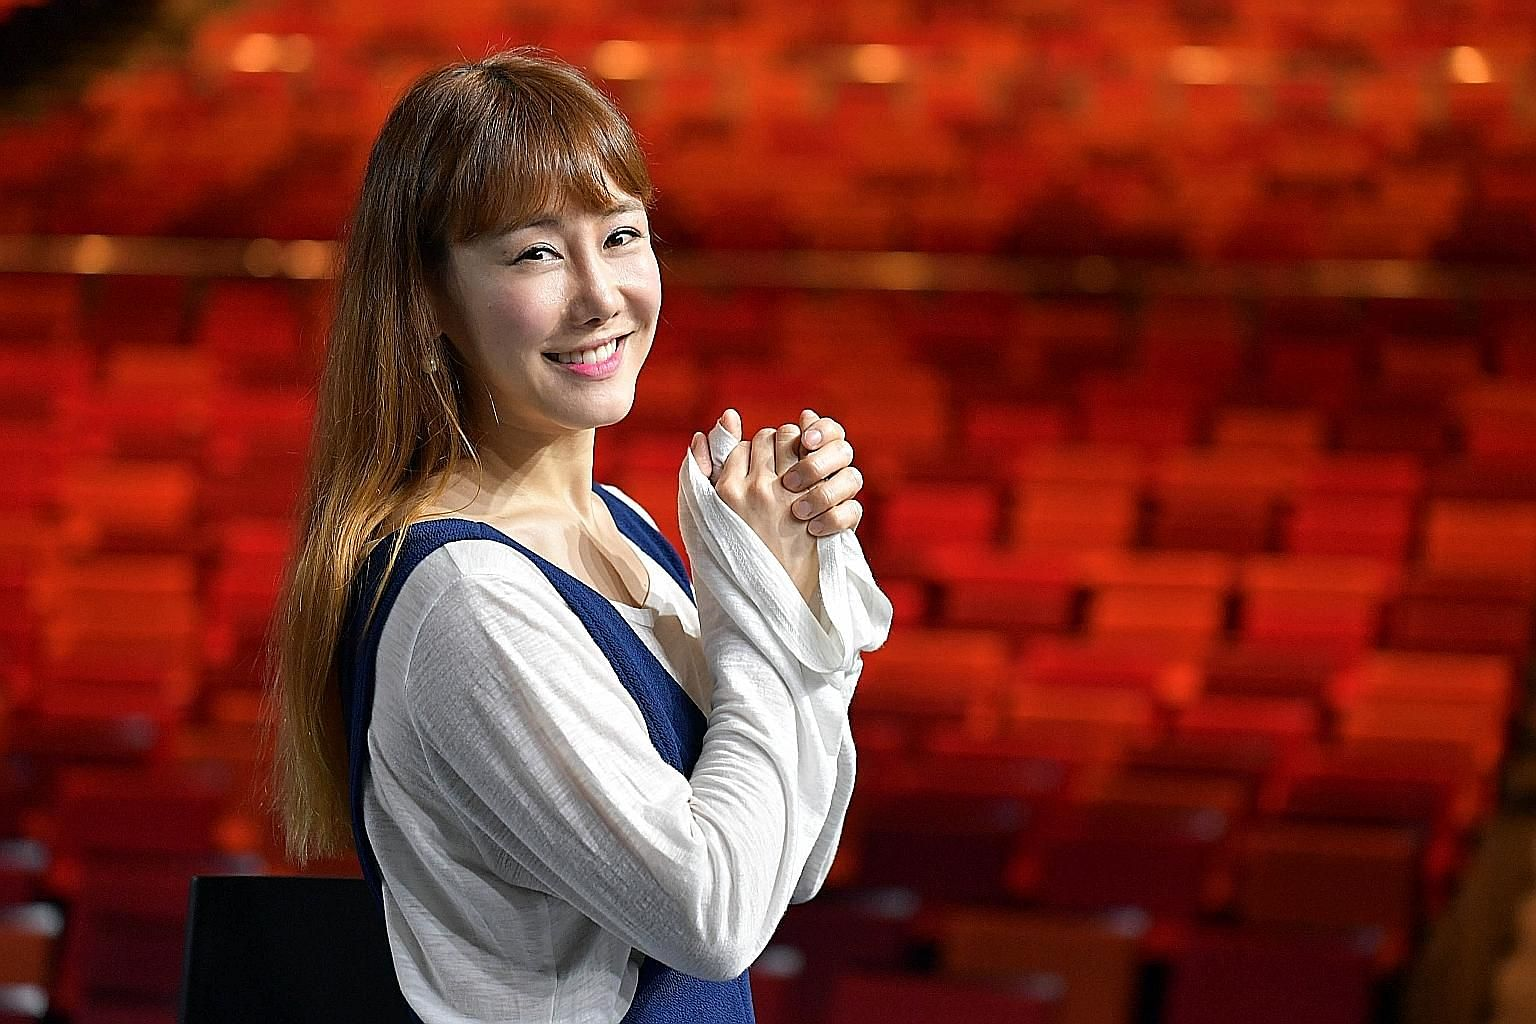 Sophie Kim was a successful musical actress in South Korea when she decided to move to New York in 2010 to further her career, despite not speaking much English then.